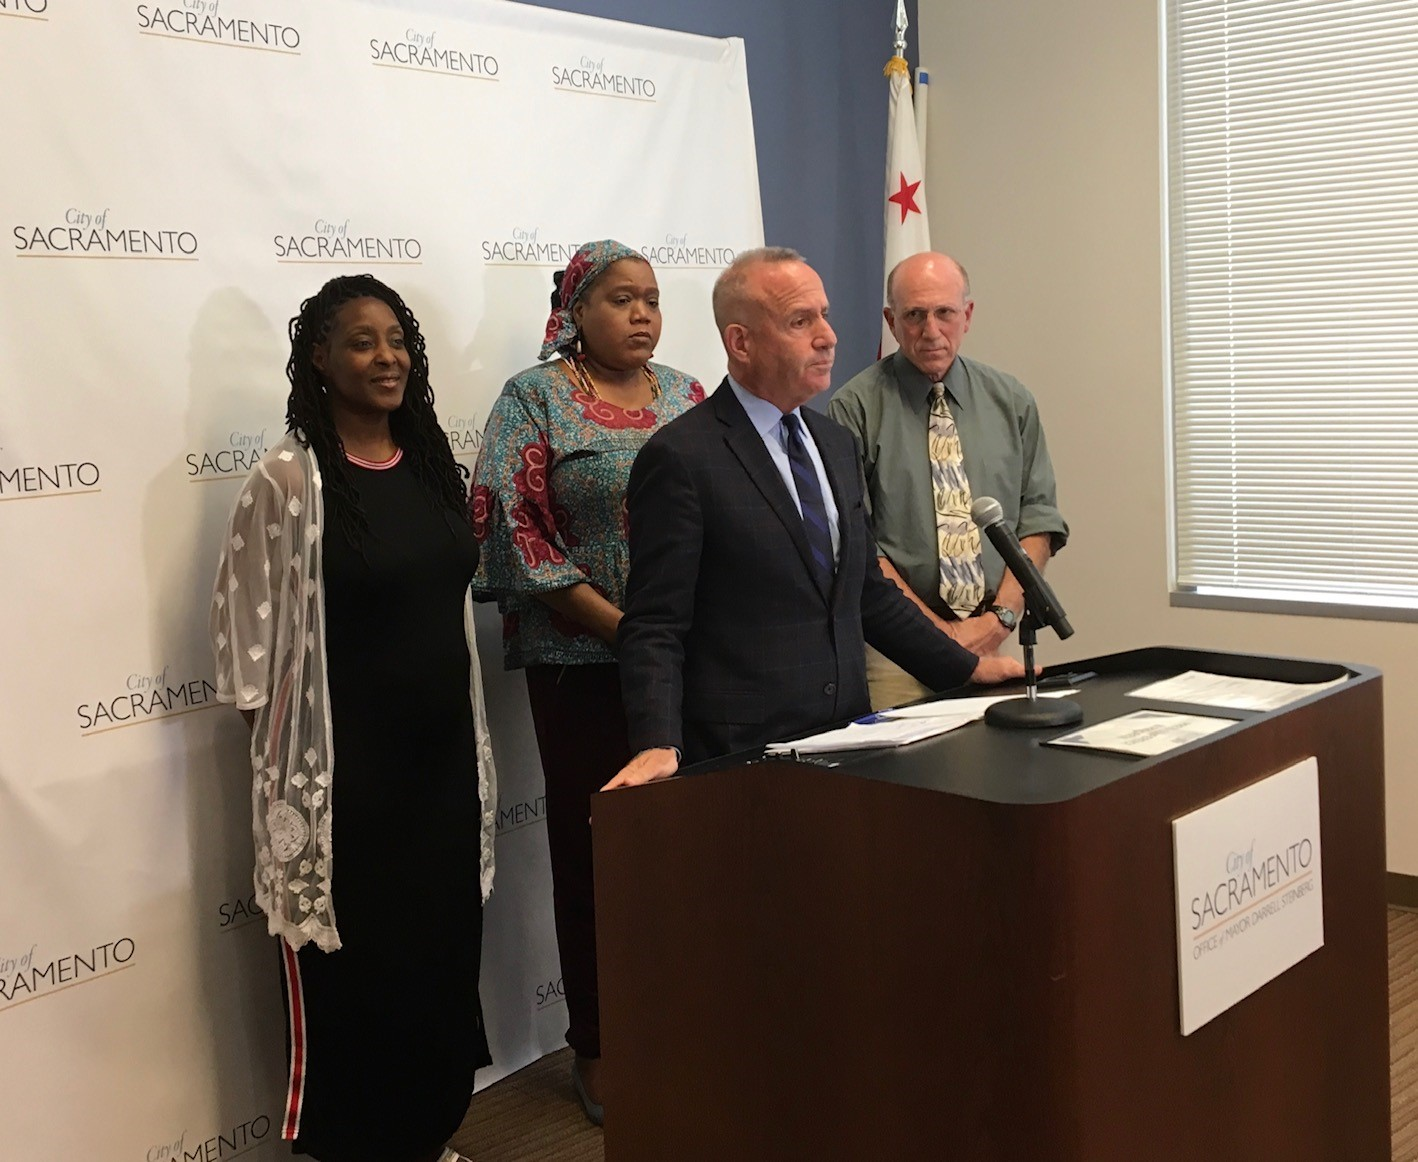 Yolanda Stevenson and RoLanda Wilkins joined Mayor Steinberg and Councilmember Schenirer to talk about the city's shelter plans.